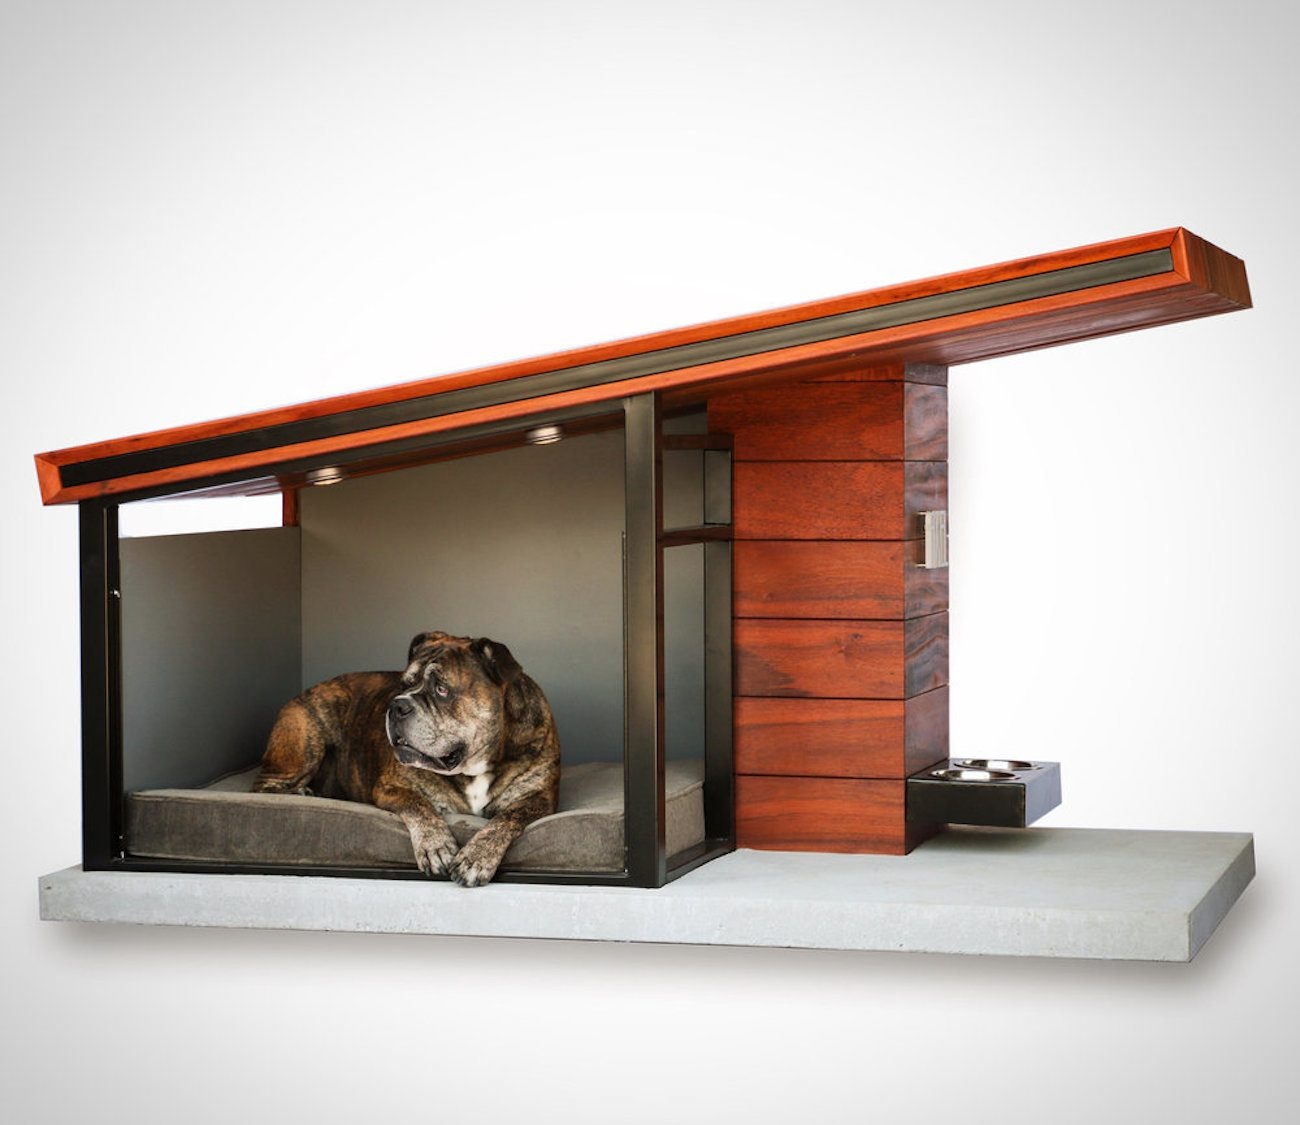 mdk9 dog haus luxury dog house gadget flow